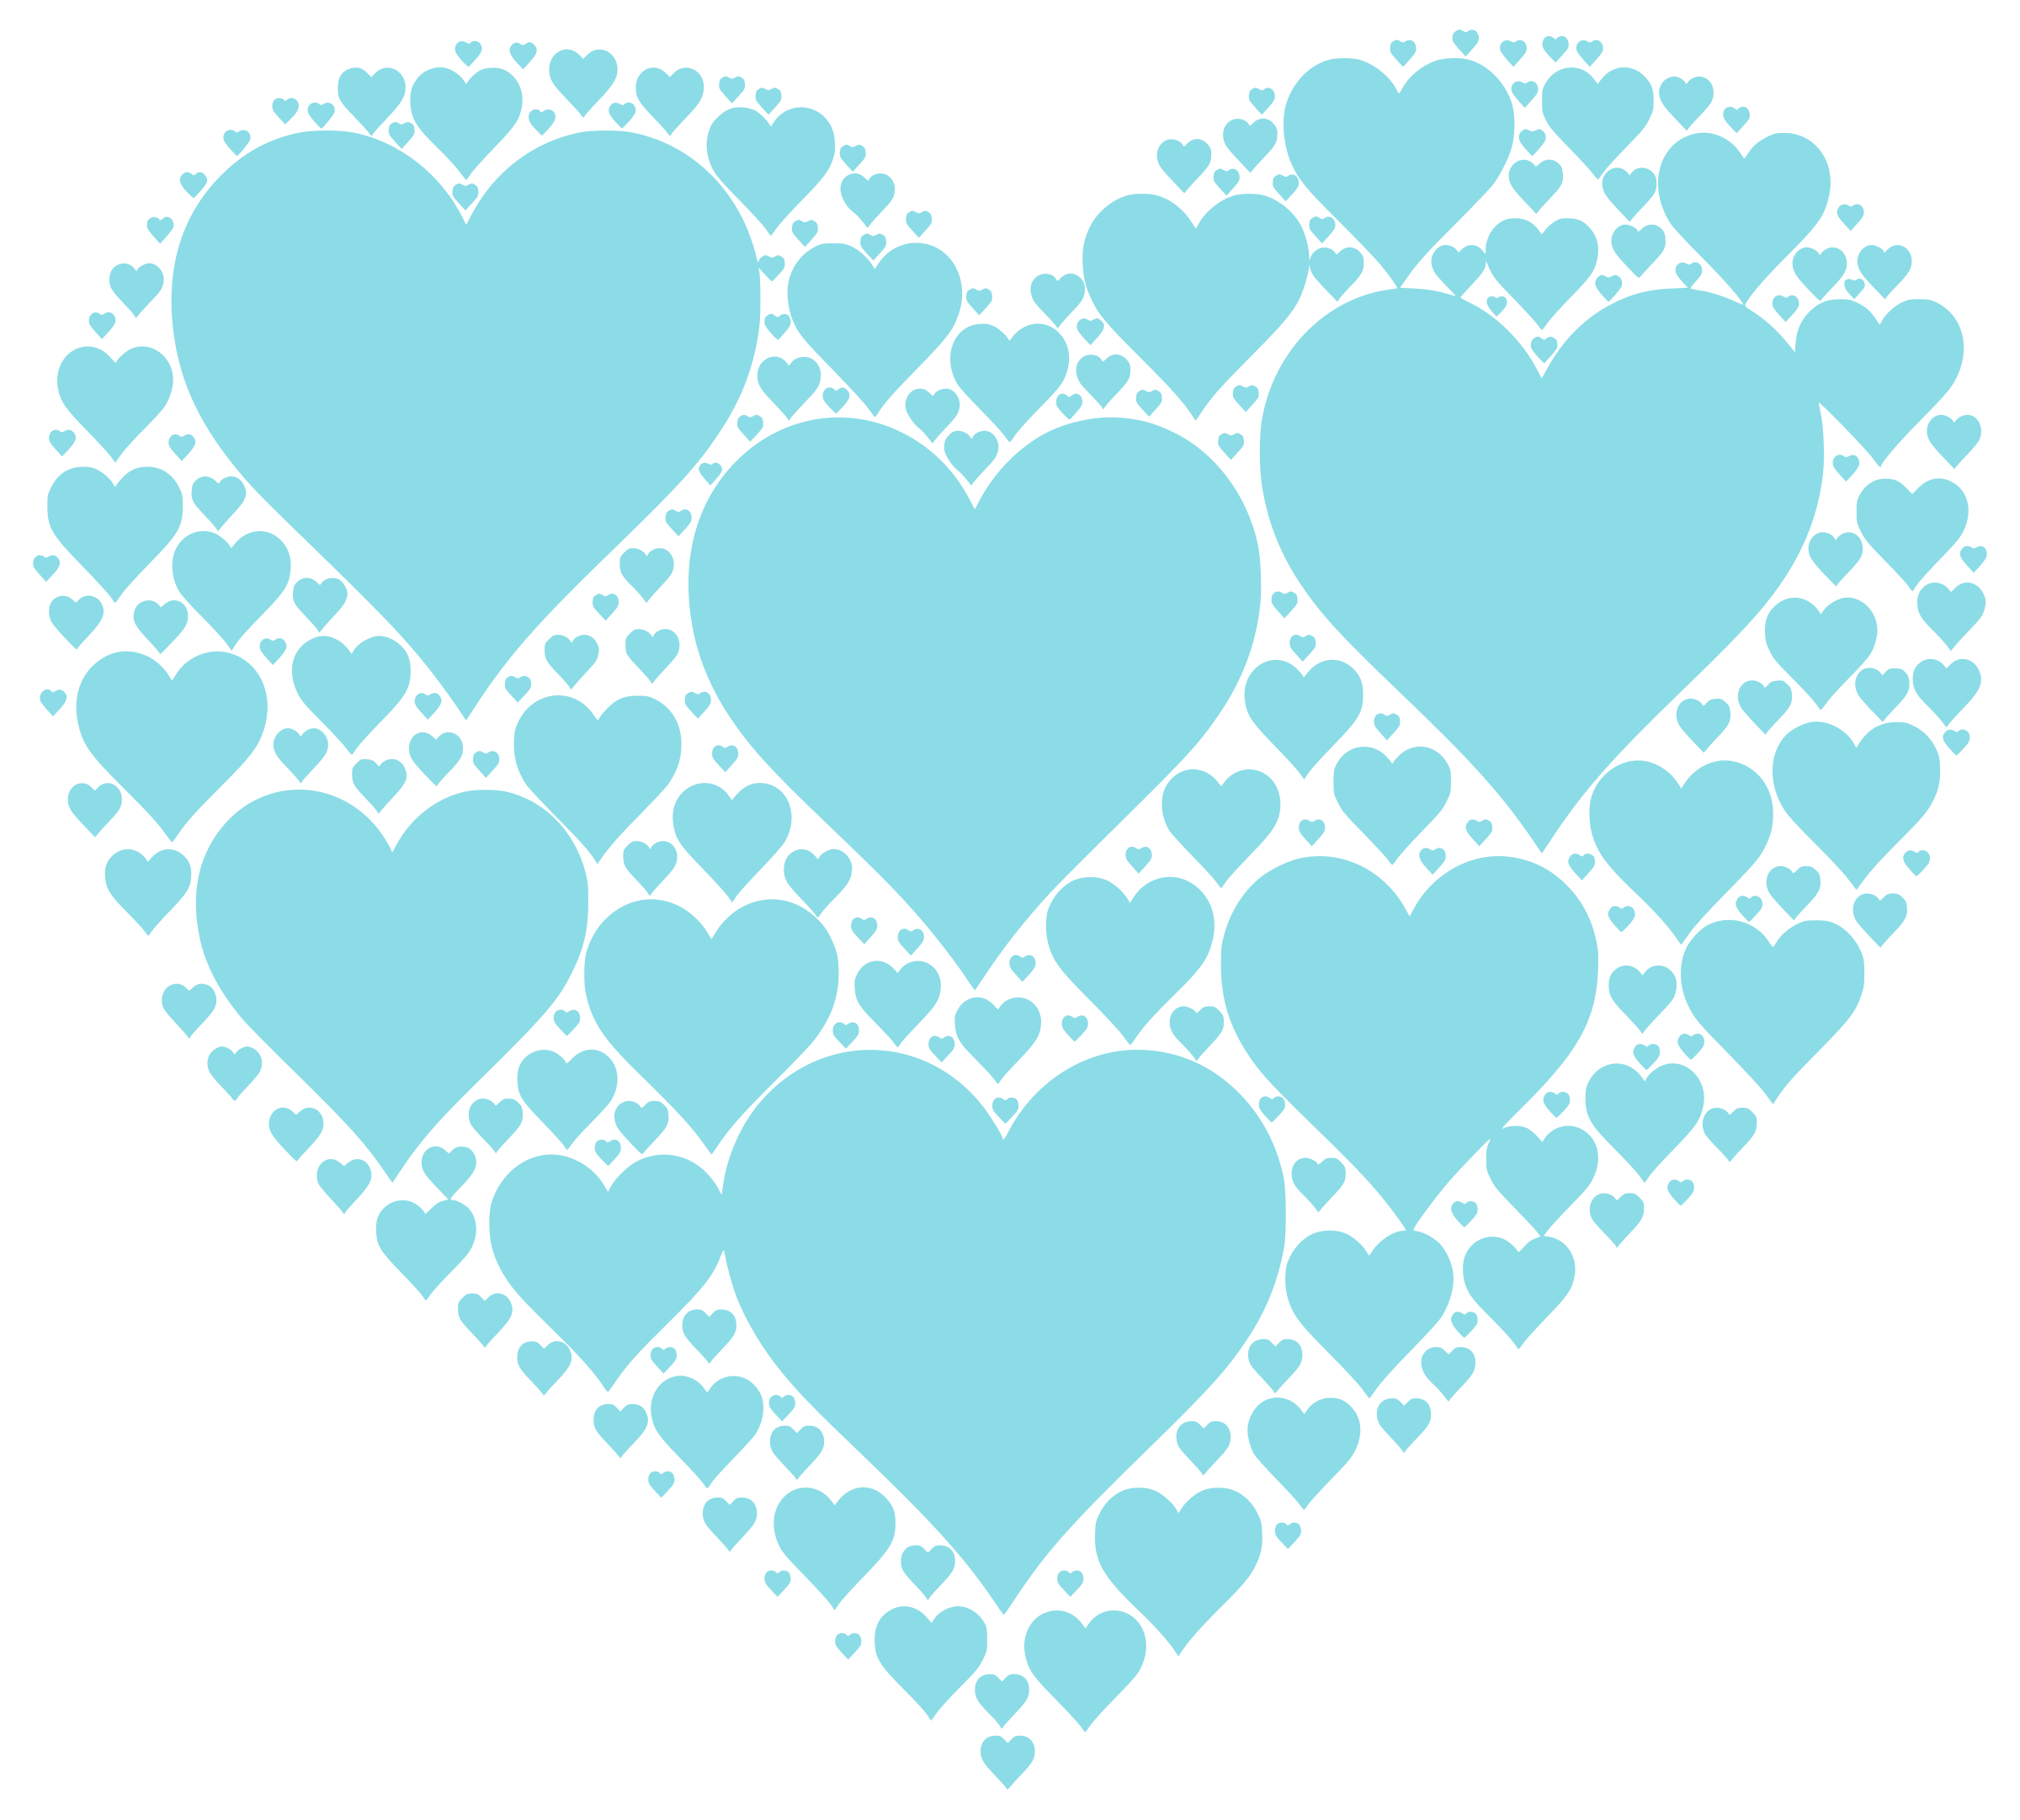 Hearts In Heart - Cyan by phidari